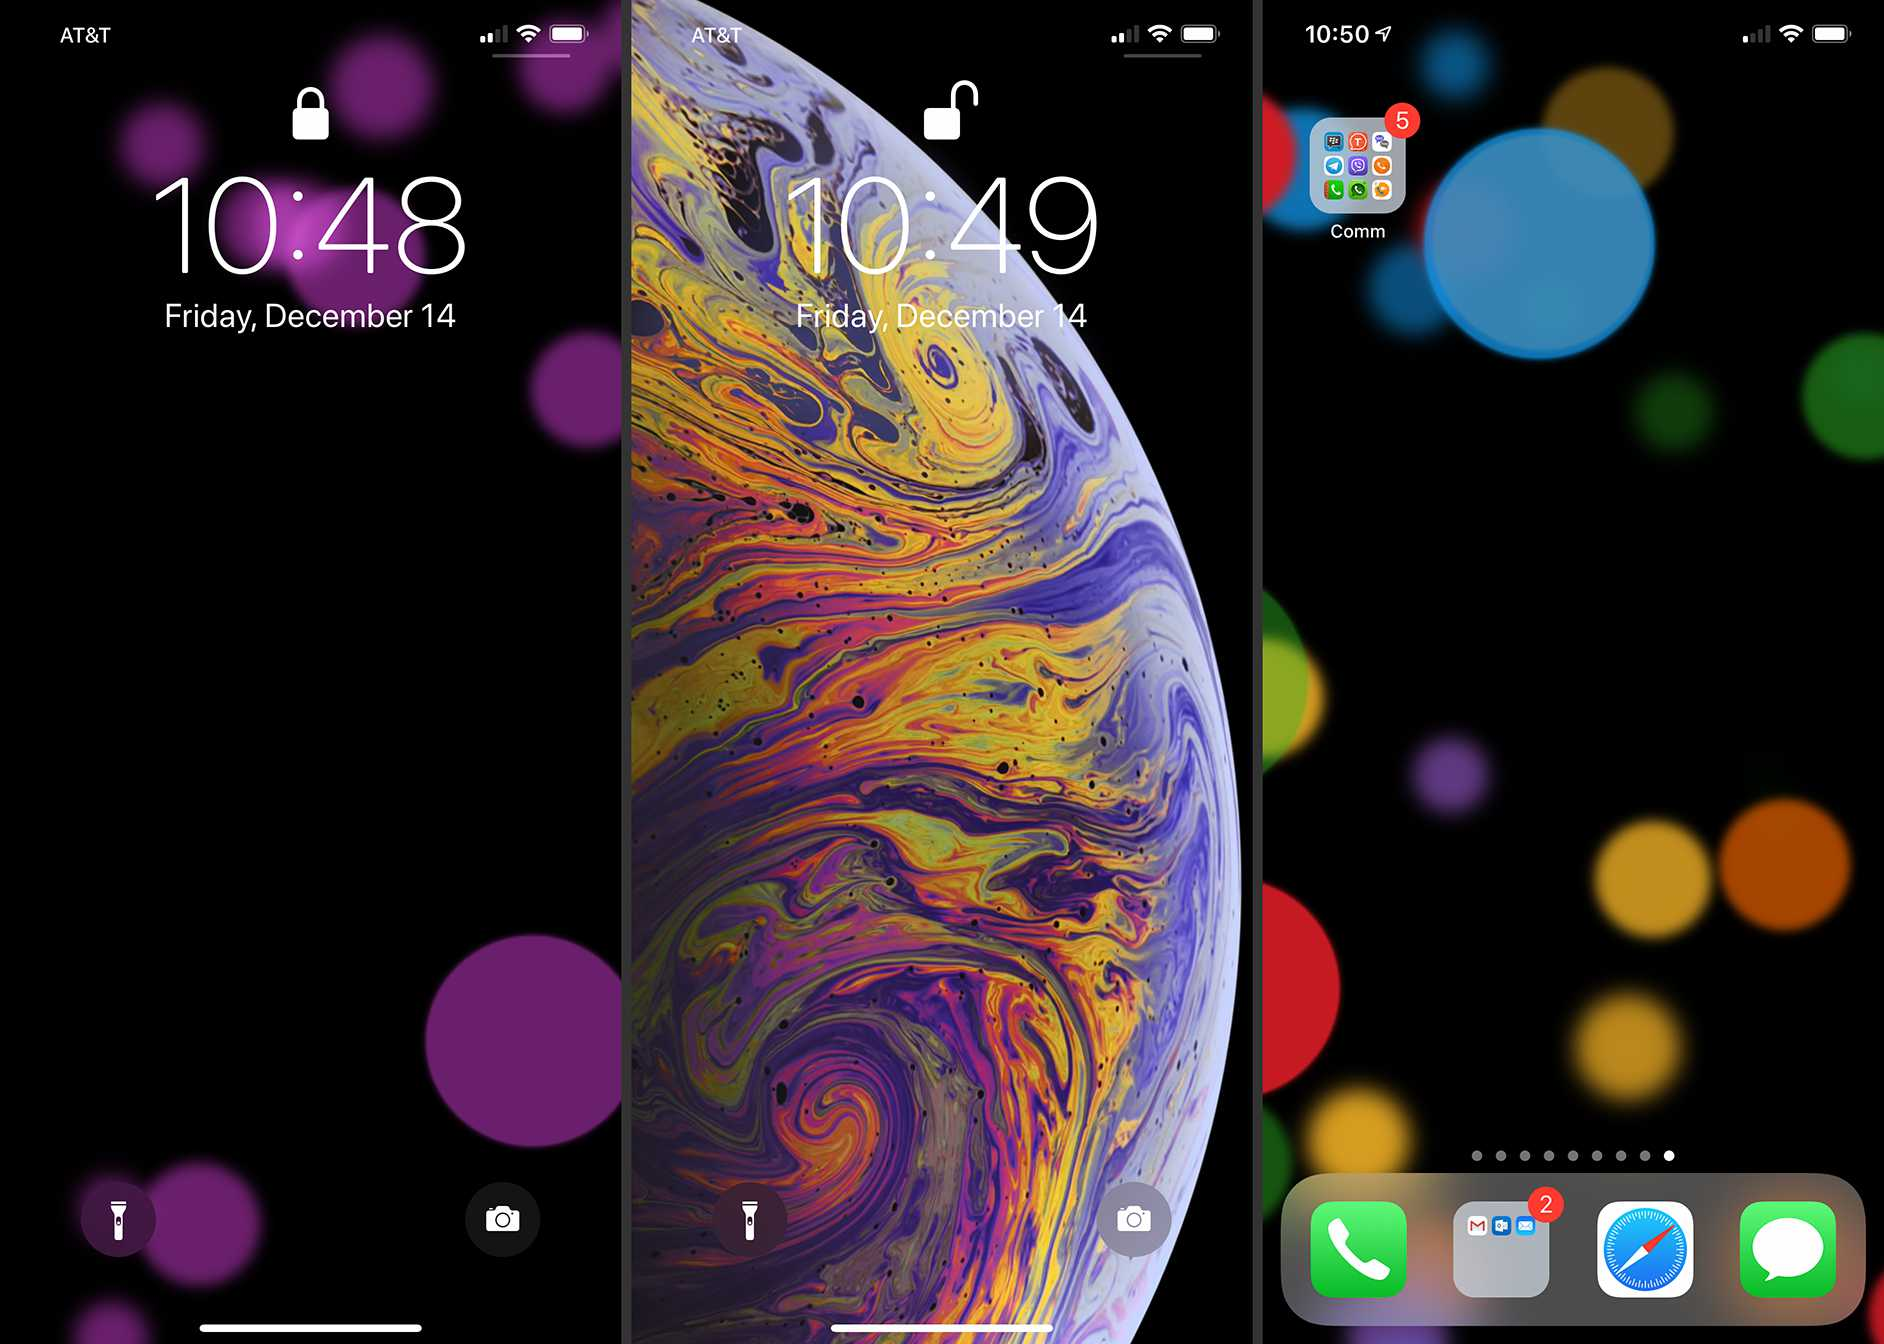 How To Use Live and Dynamic Wallpapers on iPhone